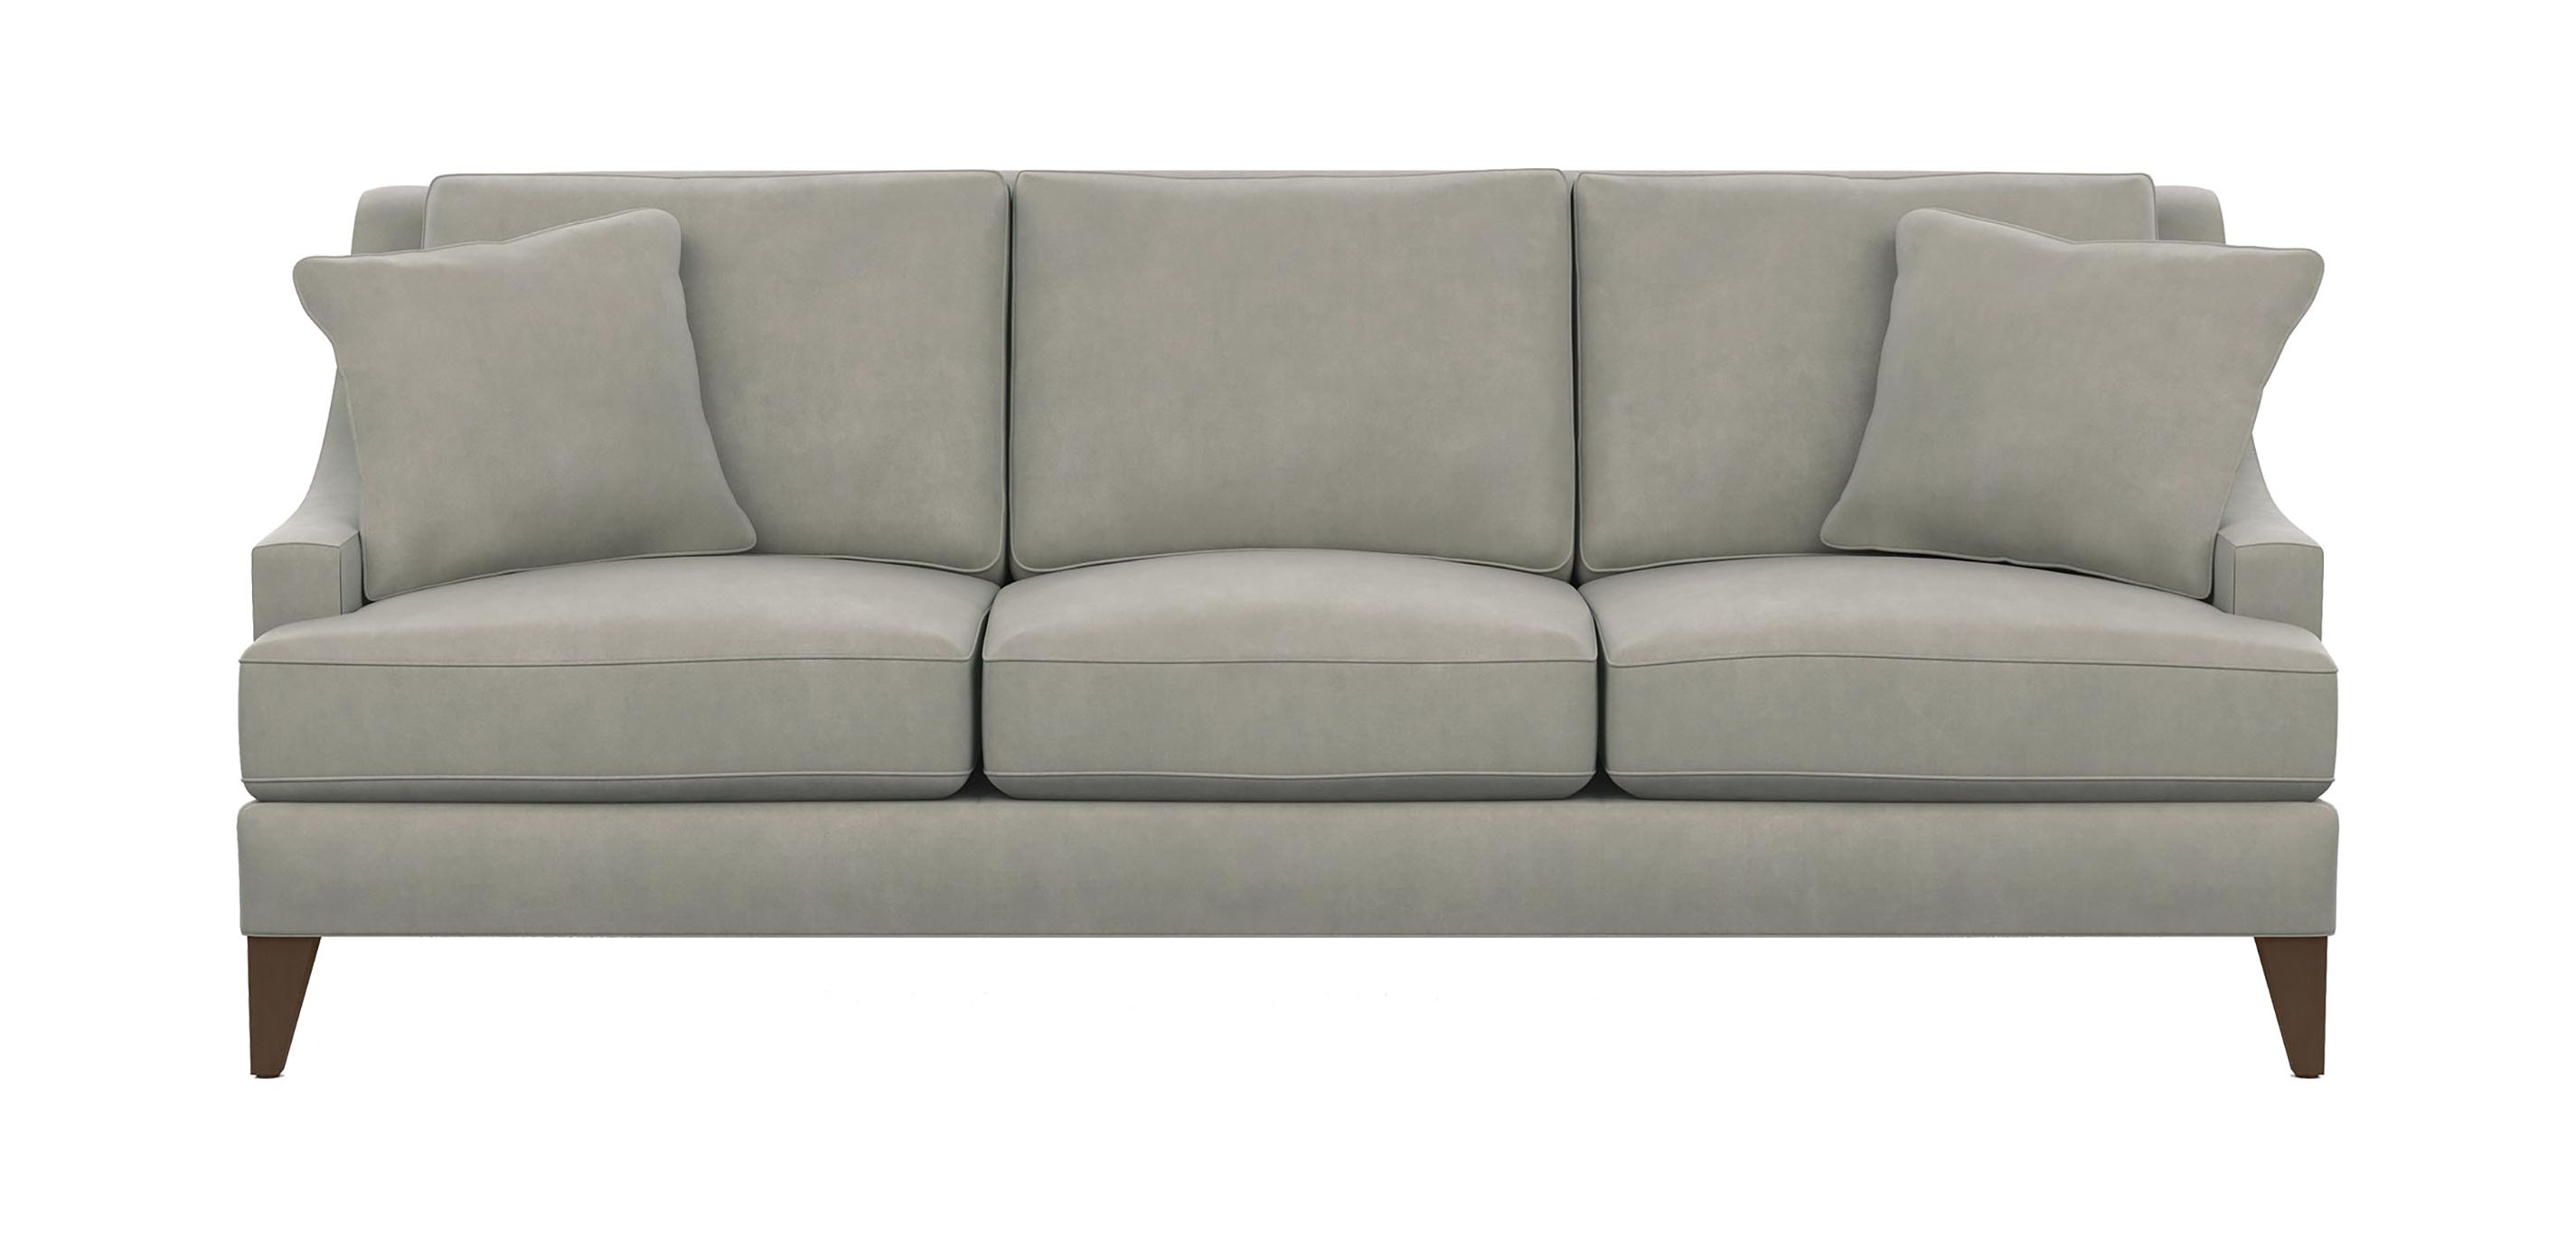 ethan allen sofas difference between sofa couch lounge emerson and loveseats